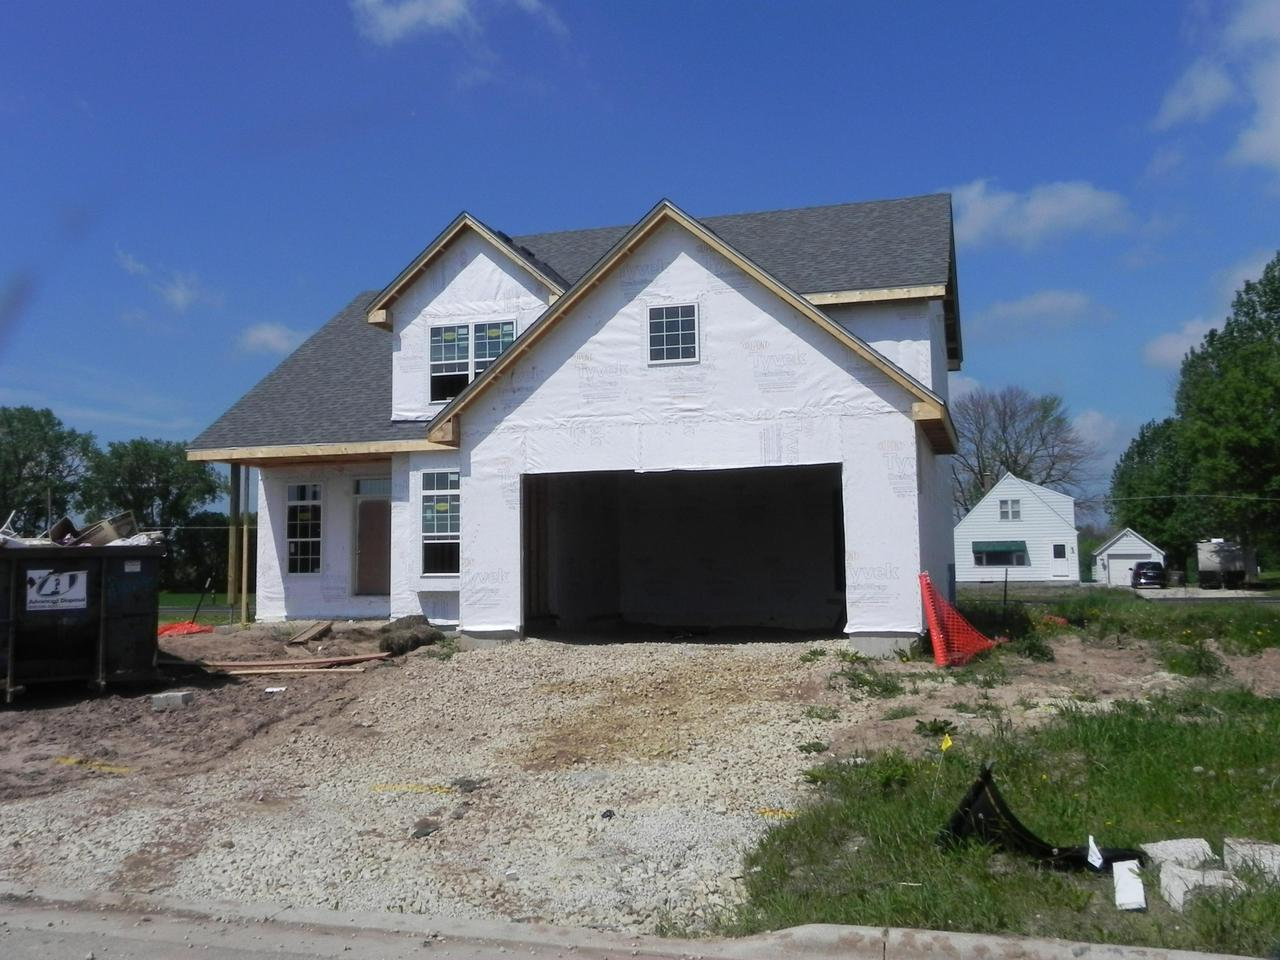 NEW CONSTRUCTION TWO STORY COLONIAL OFFERING 2017 DECOR-ENTER FOYER TO A OPEN CONCEPT LIV RM W/GFP,KITCHEN/DINETTE AREA. SPACIOUS KITCHEN WITH GRANITE,ISLAND,WALKIN PANTRY.  1ST FL MUD ROOM W/ LOCKERS + OFF./DEN.  UPPER LEVEL MASTER WITH HIS/HER WALKIN,TRAY CEILINGS & MASTER SUITE-GRANITE,DOUBLE VANITY AND TILE WALKIN SHOWER W/ 2 SHOWER HEADS. THREE OTHER BEDROOMS WITH SPACIOUS CLOSETS.  KOHLER PLUMBING, MAINT. FREE EXTERIOR.  LOWER LEVEL FULL BATH ROUGH & EGRESS WINDOW & RADON SYSTEM.  SEE DOCUMENTS FOR SPEC SHEET,FLOOR PLANS AND PLAT OF SURVEY!!